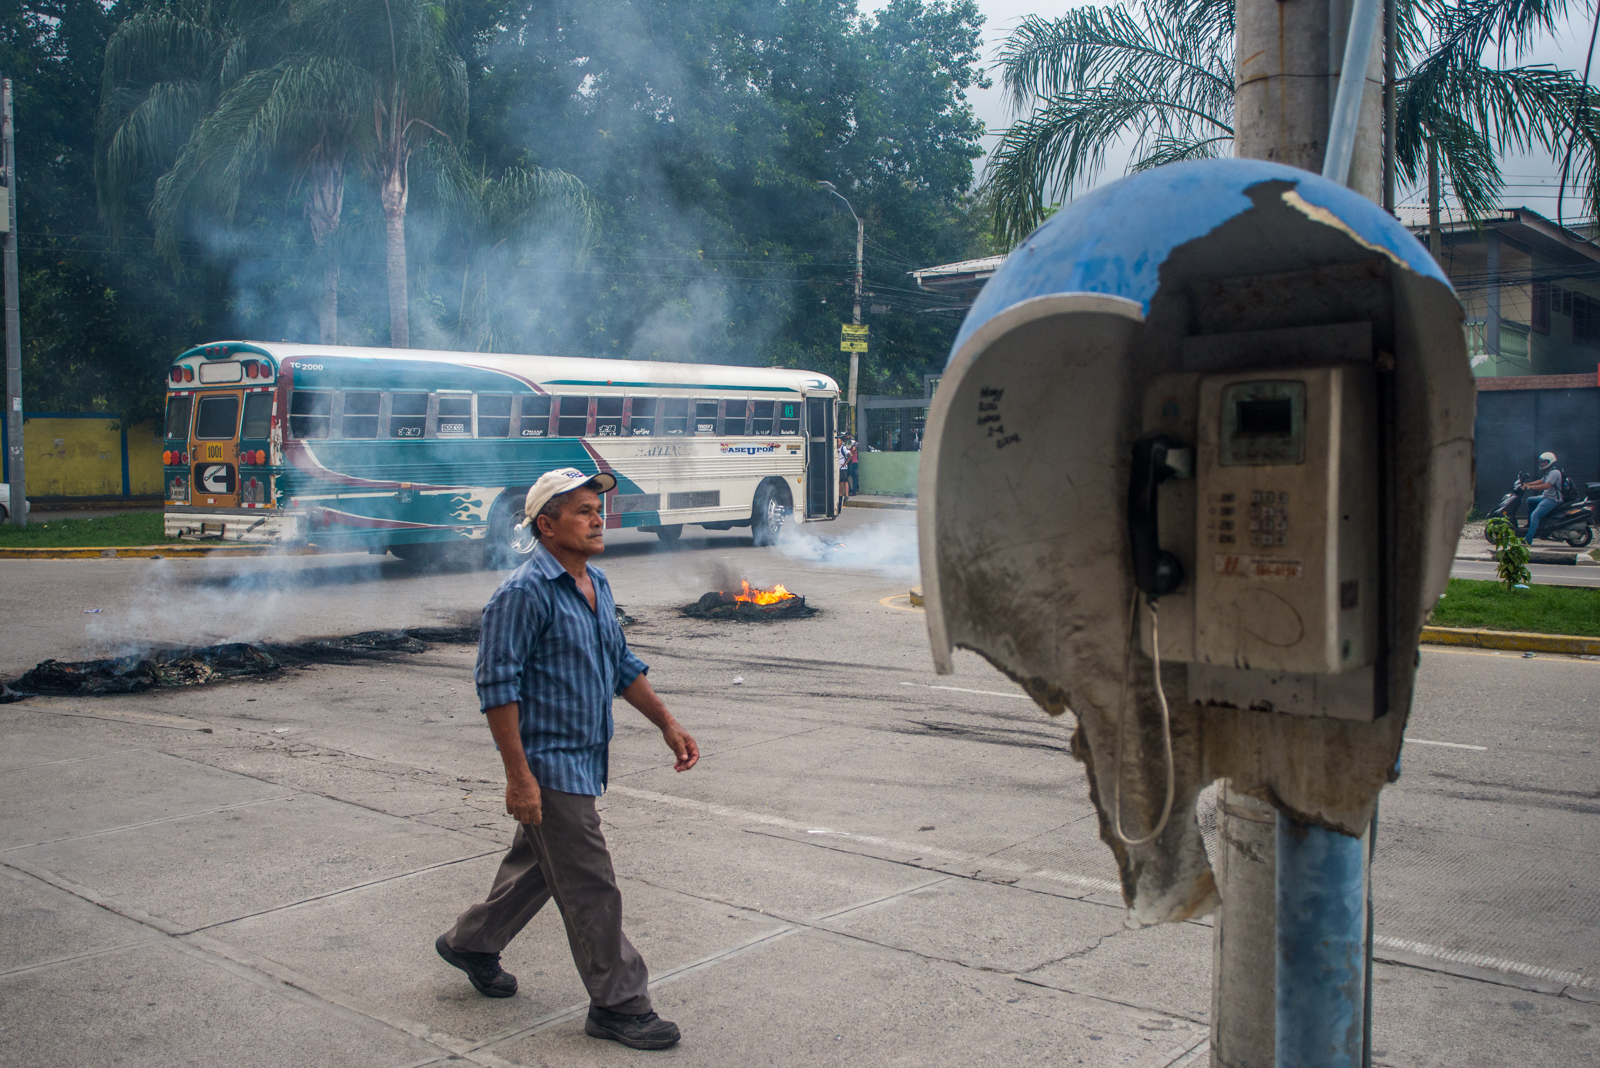 """The remnants of a protest--burnt tires--remain in the street hours after the chaos. This particular protest was due to a rise in public transit tickets. Ironically, a public bus, called """"Rutas"""", is passing by. In Honduras this is a common sight and the passersby continue their life's unaffected."""